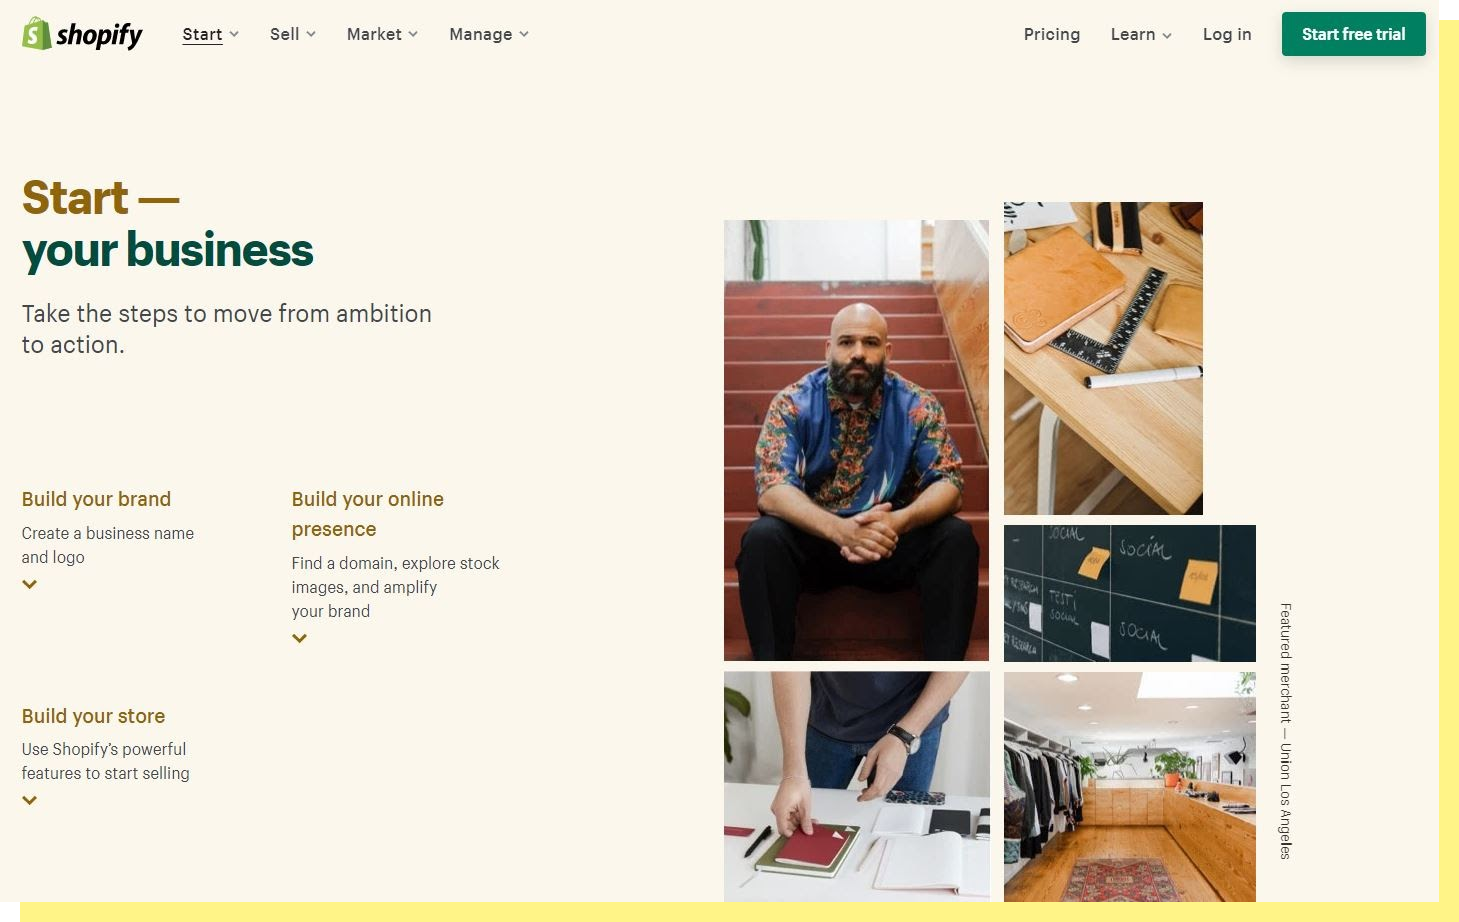 """An image of the Shopify homepage. The main text reads: """"Start your business."""" There is marketing text on the left side of the screen, with a collage of images on the right showing small business activity."""